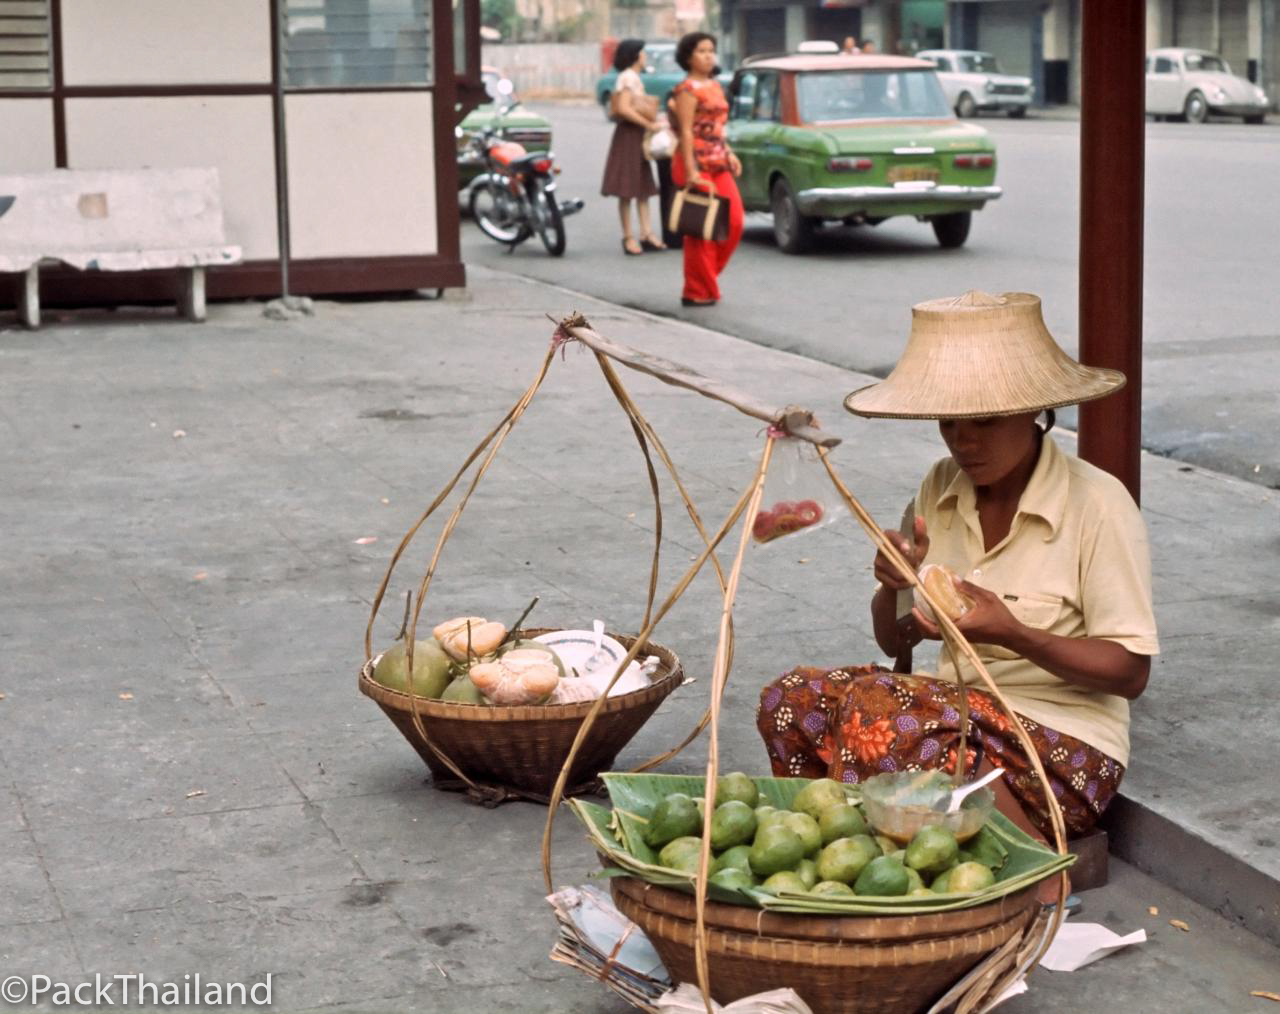 BEAUTIFUL PICTURES OF BANGKOK IN THE 1970S BEFORE TOURISM TRANSF